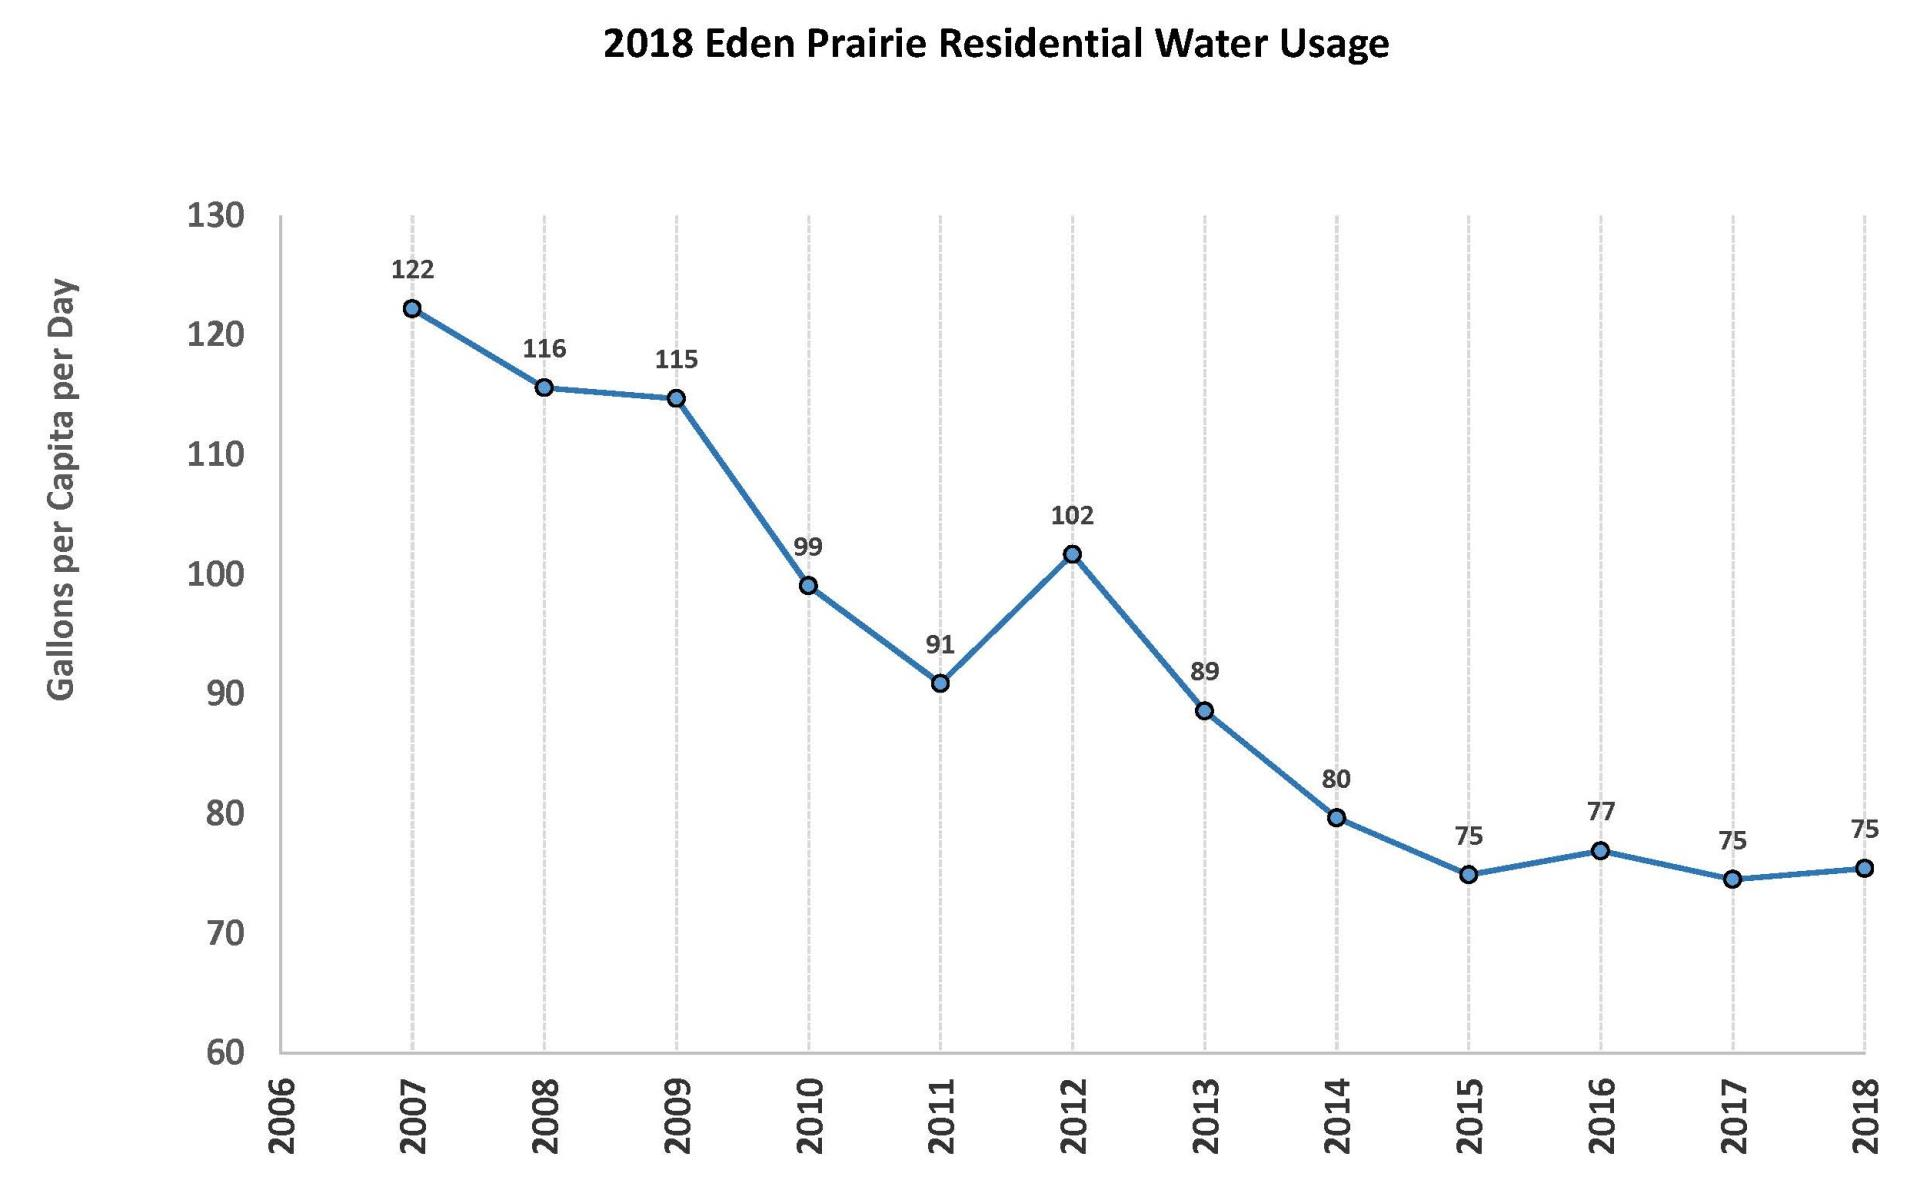 2018 Residential Water Usage